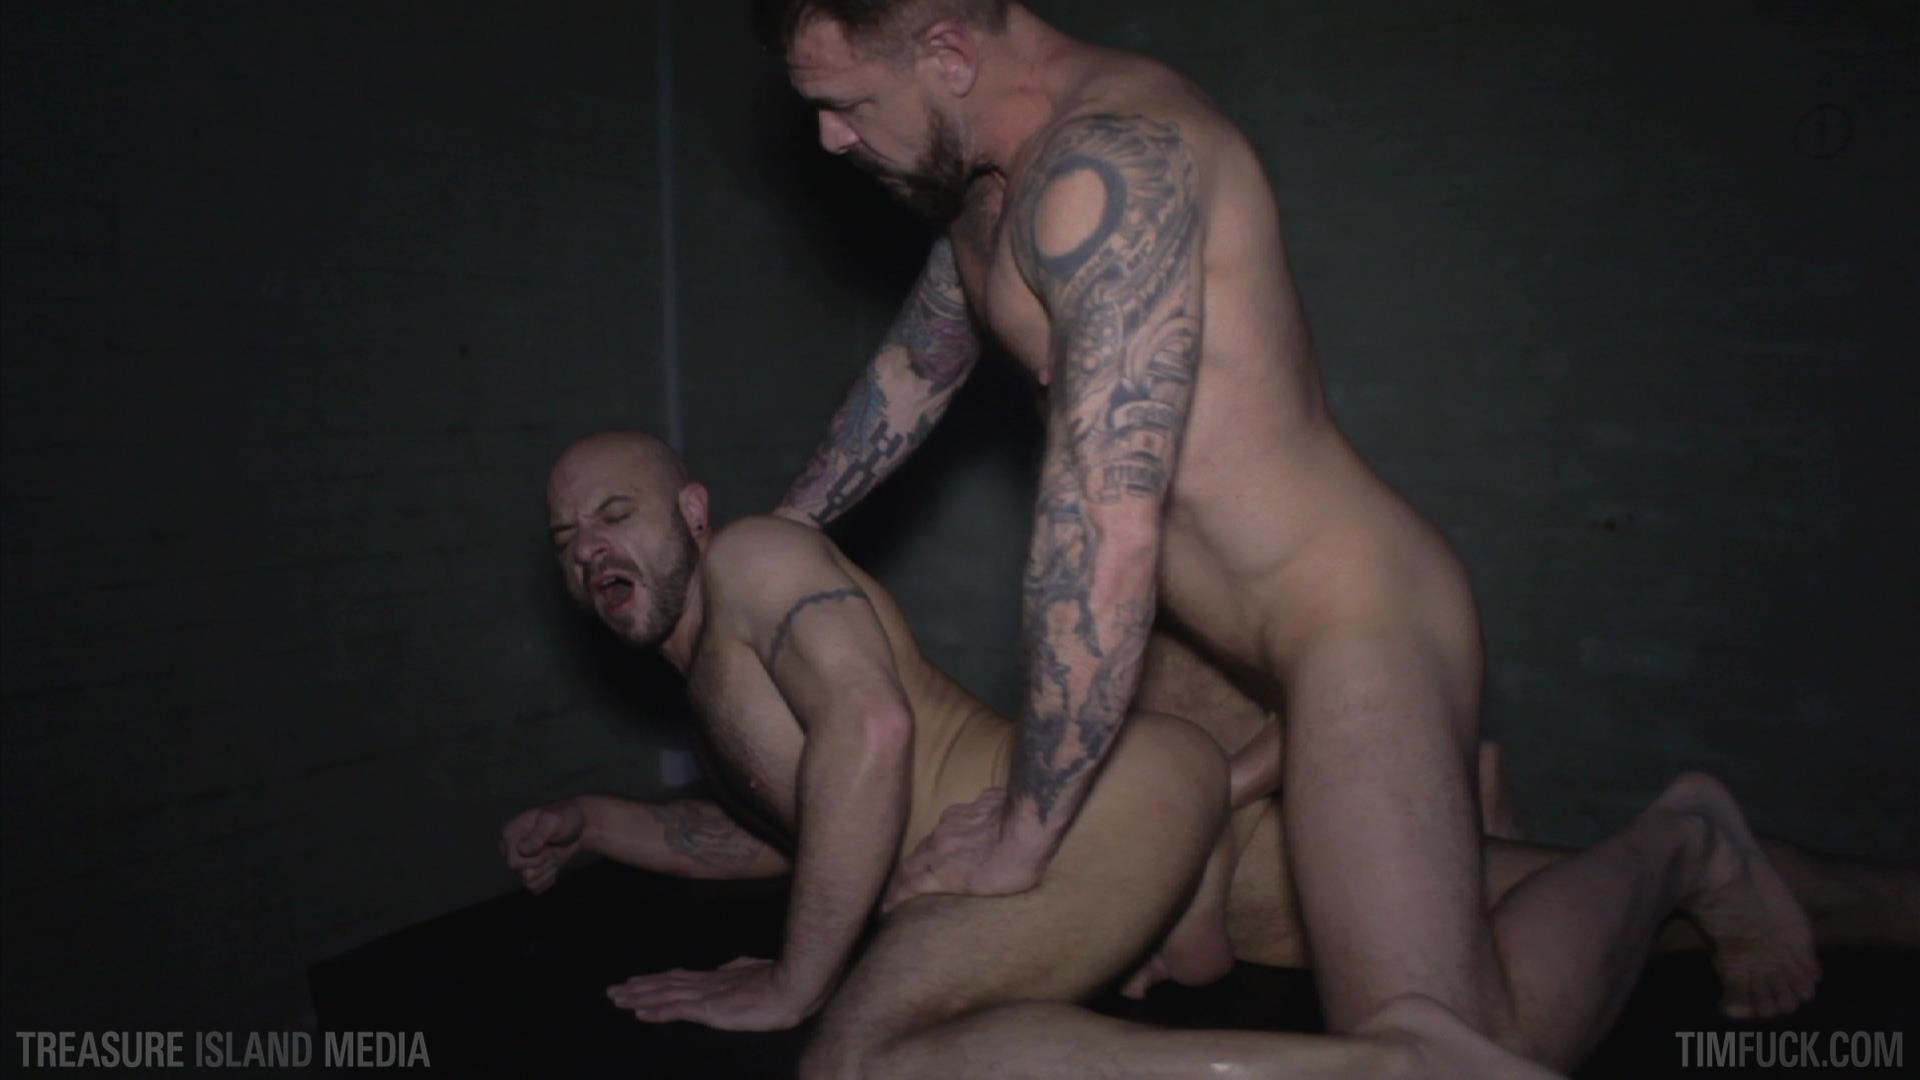 Treasure-Island-Media-TimFuck-Rocco-Steele-and-Ben-Statham-Bareback-Amateur-Gay-Porn-32 Treasure Island Media: Rocco Steele and Ben Statham Bareback In A London Bathhouse